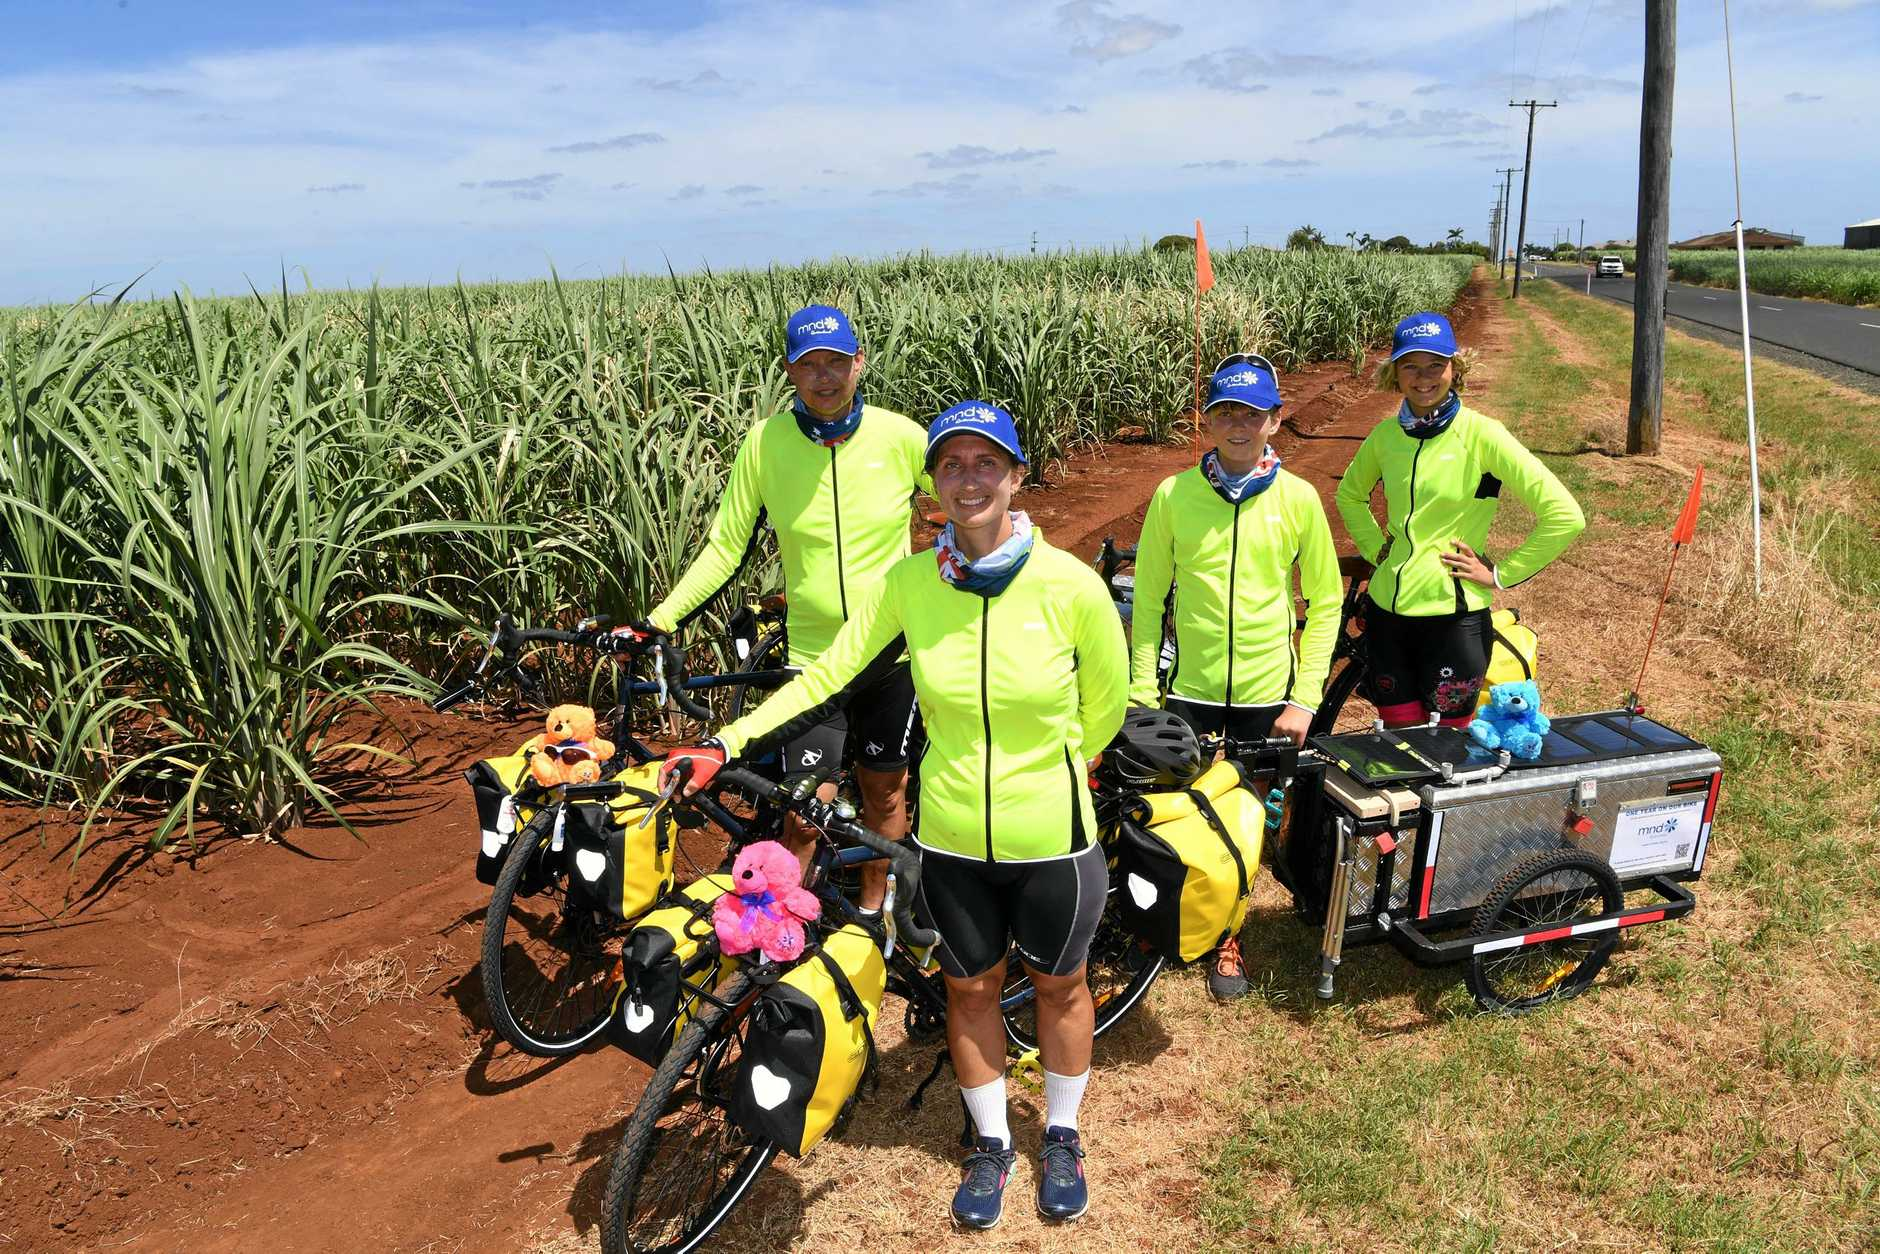 FAMILY ADVENTURE: The Wolters family are taking a trip of a lifetime. Jozef, Diana, Jack and Cloe are going to cycle around Australia.